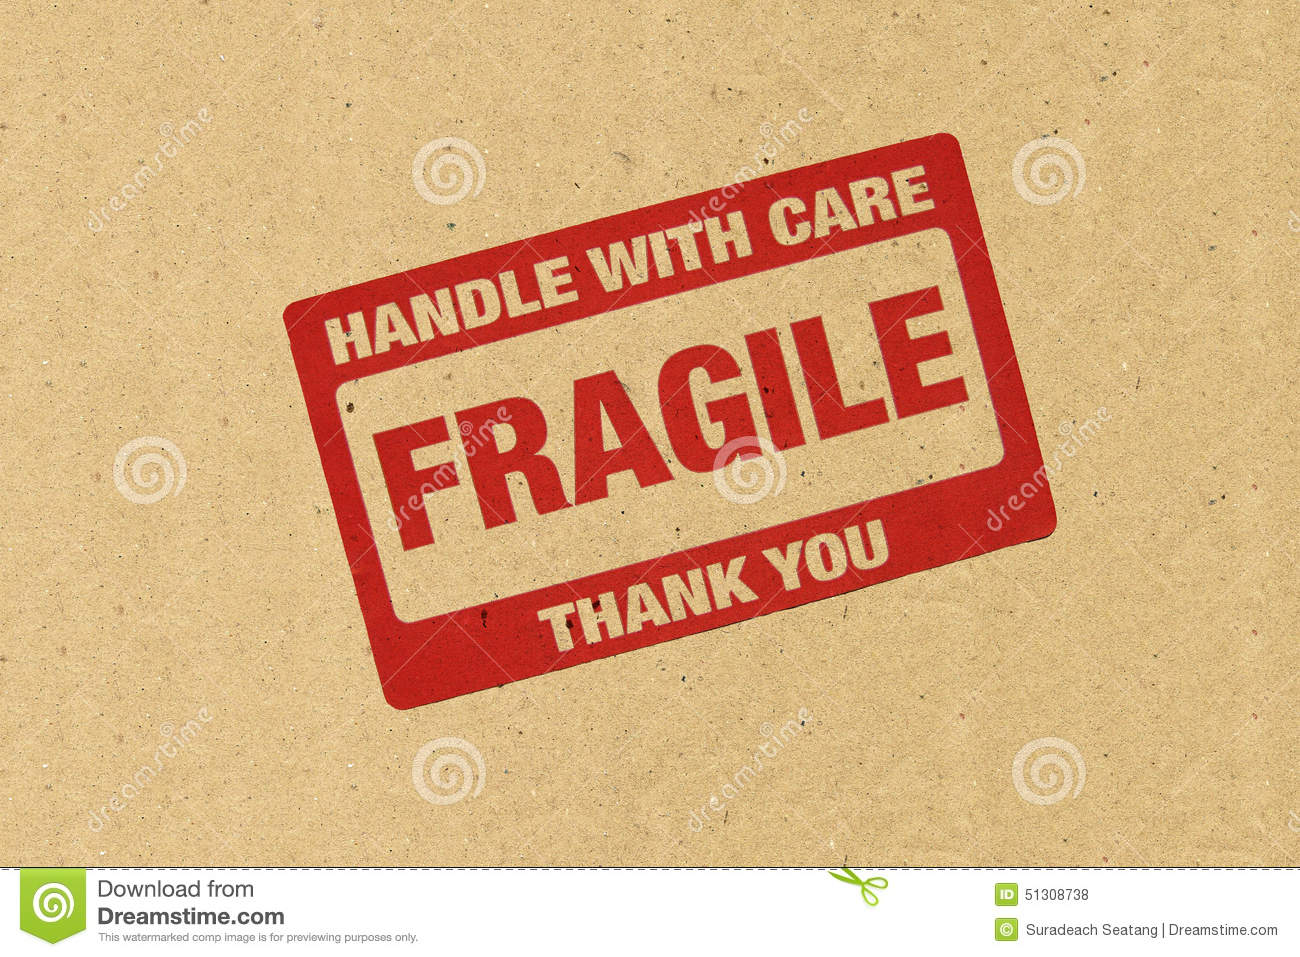 Fragile Logo Stock Photo - Image: 51308738